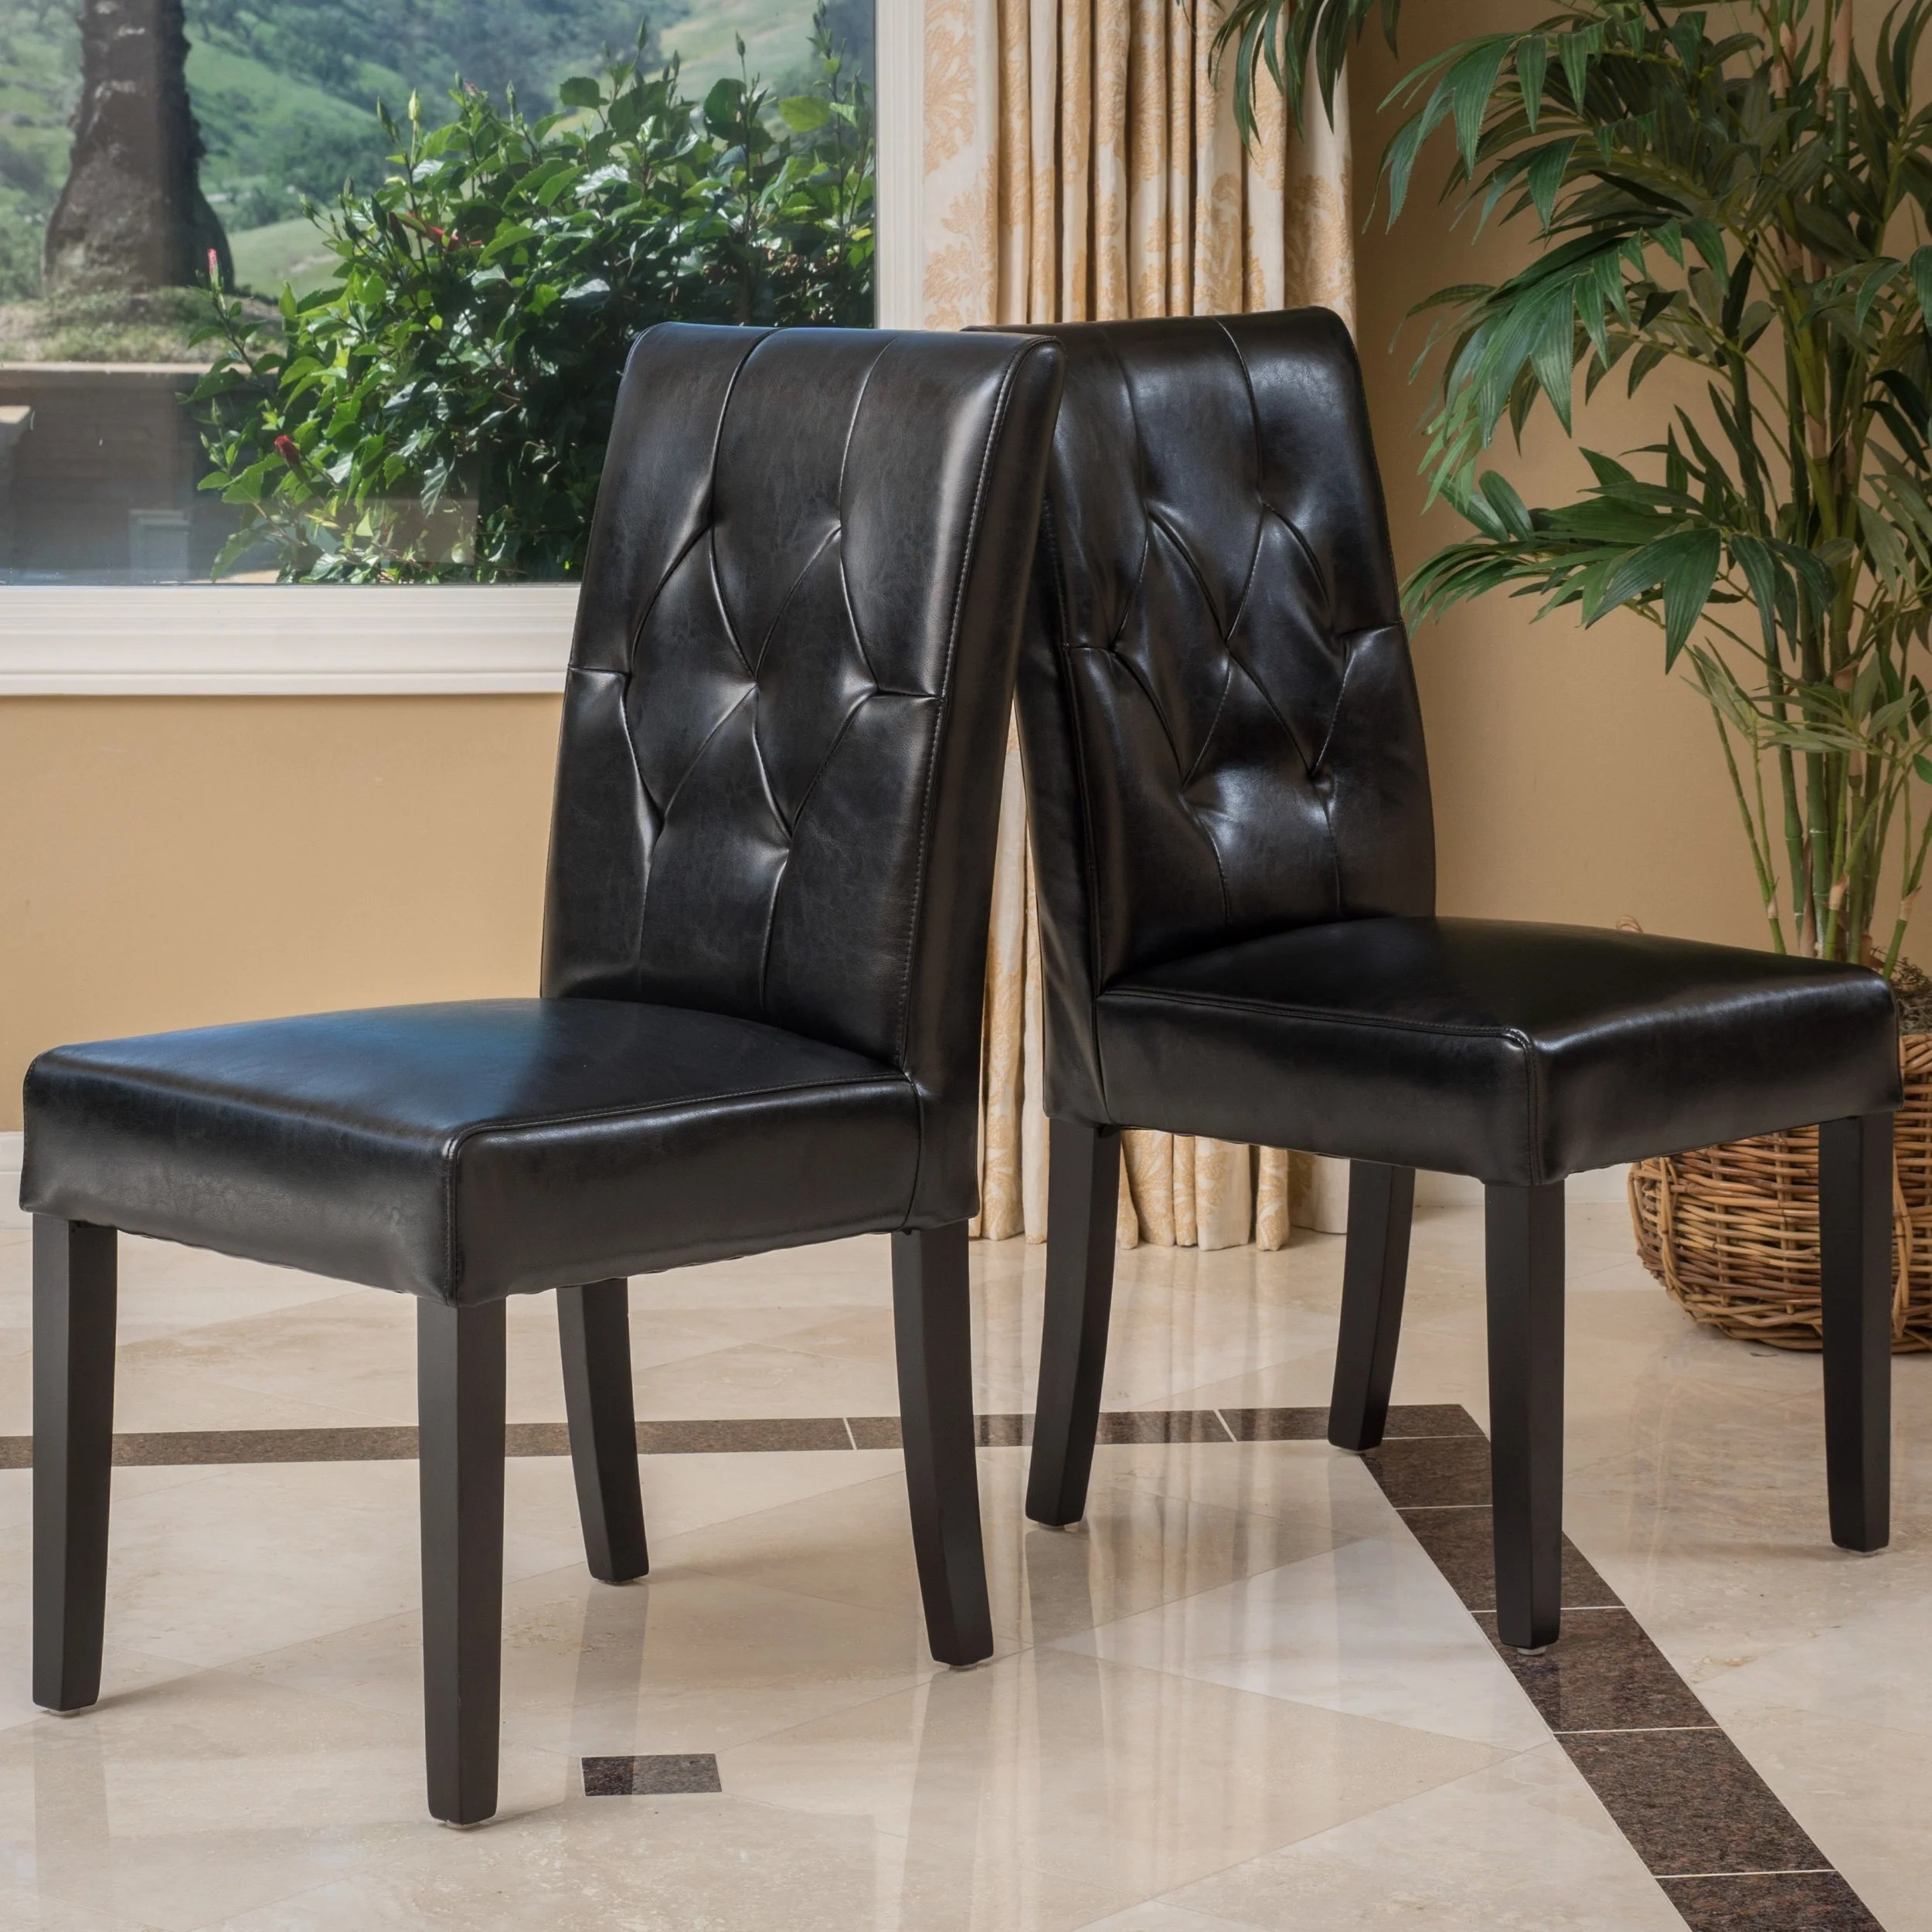 christopher knight leather chair dining covers for wedding home gentry bonded black